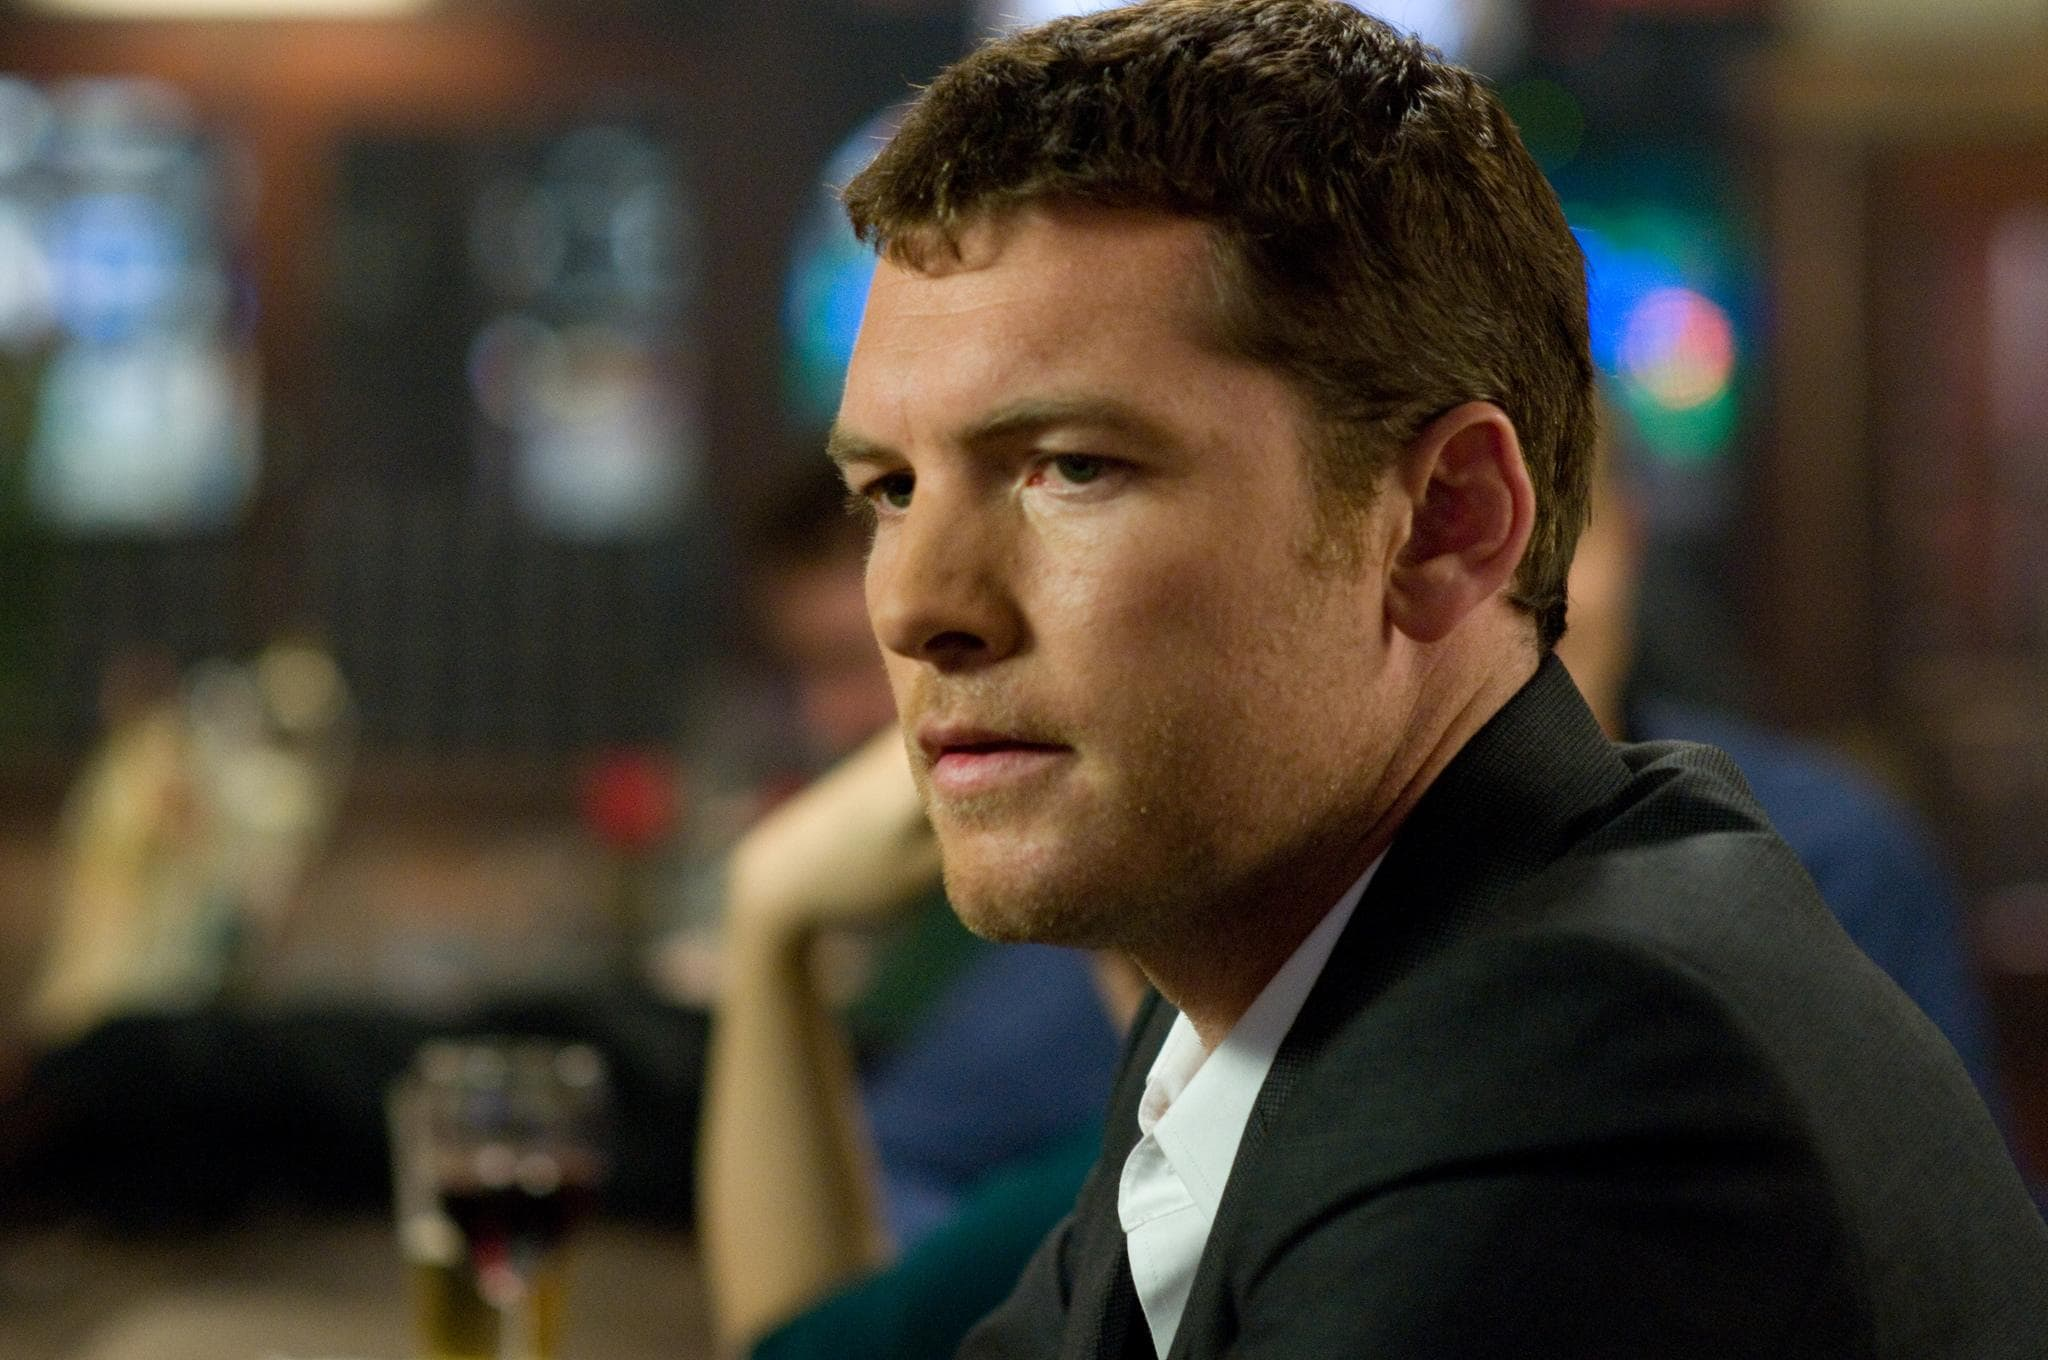 Sam Worthington Download